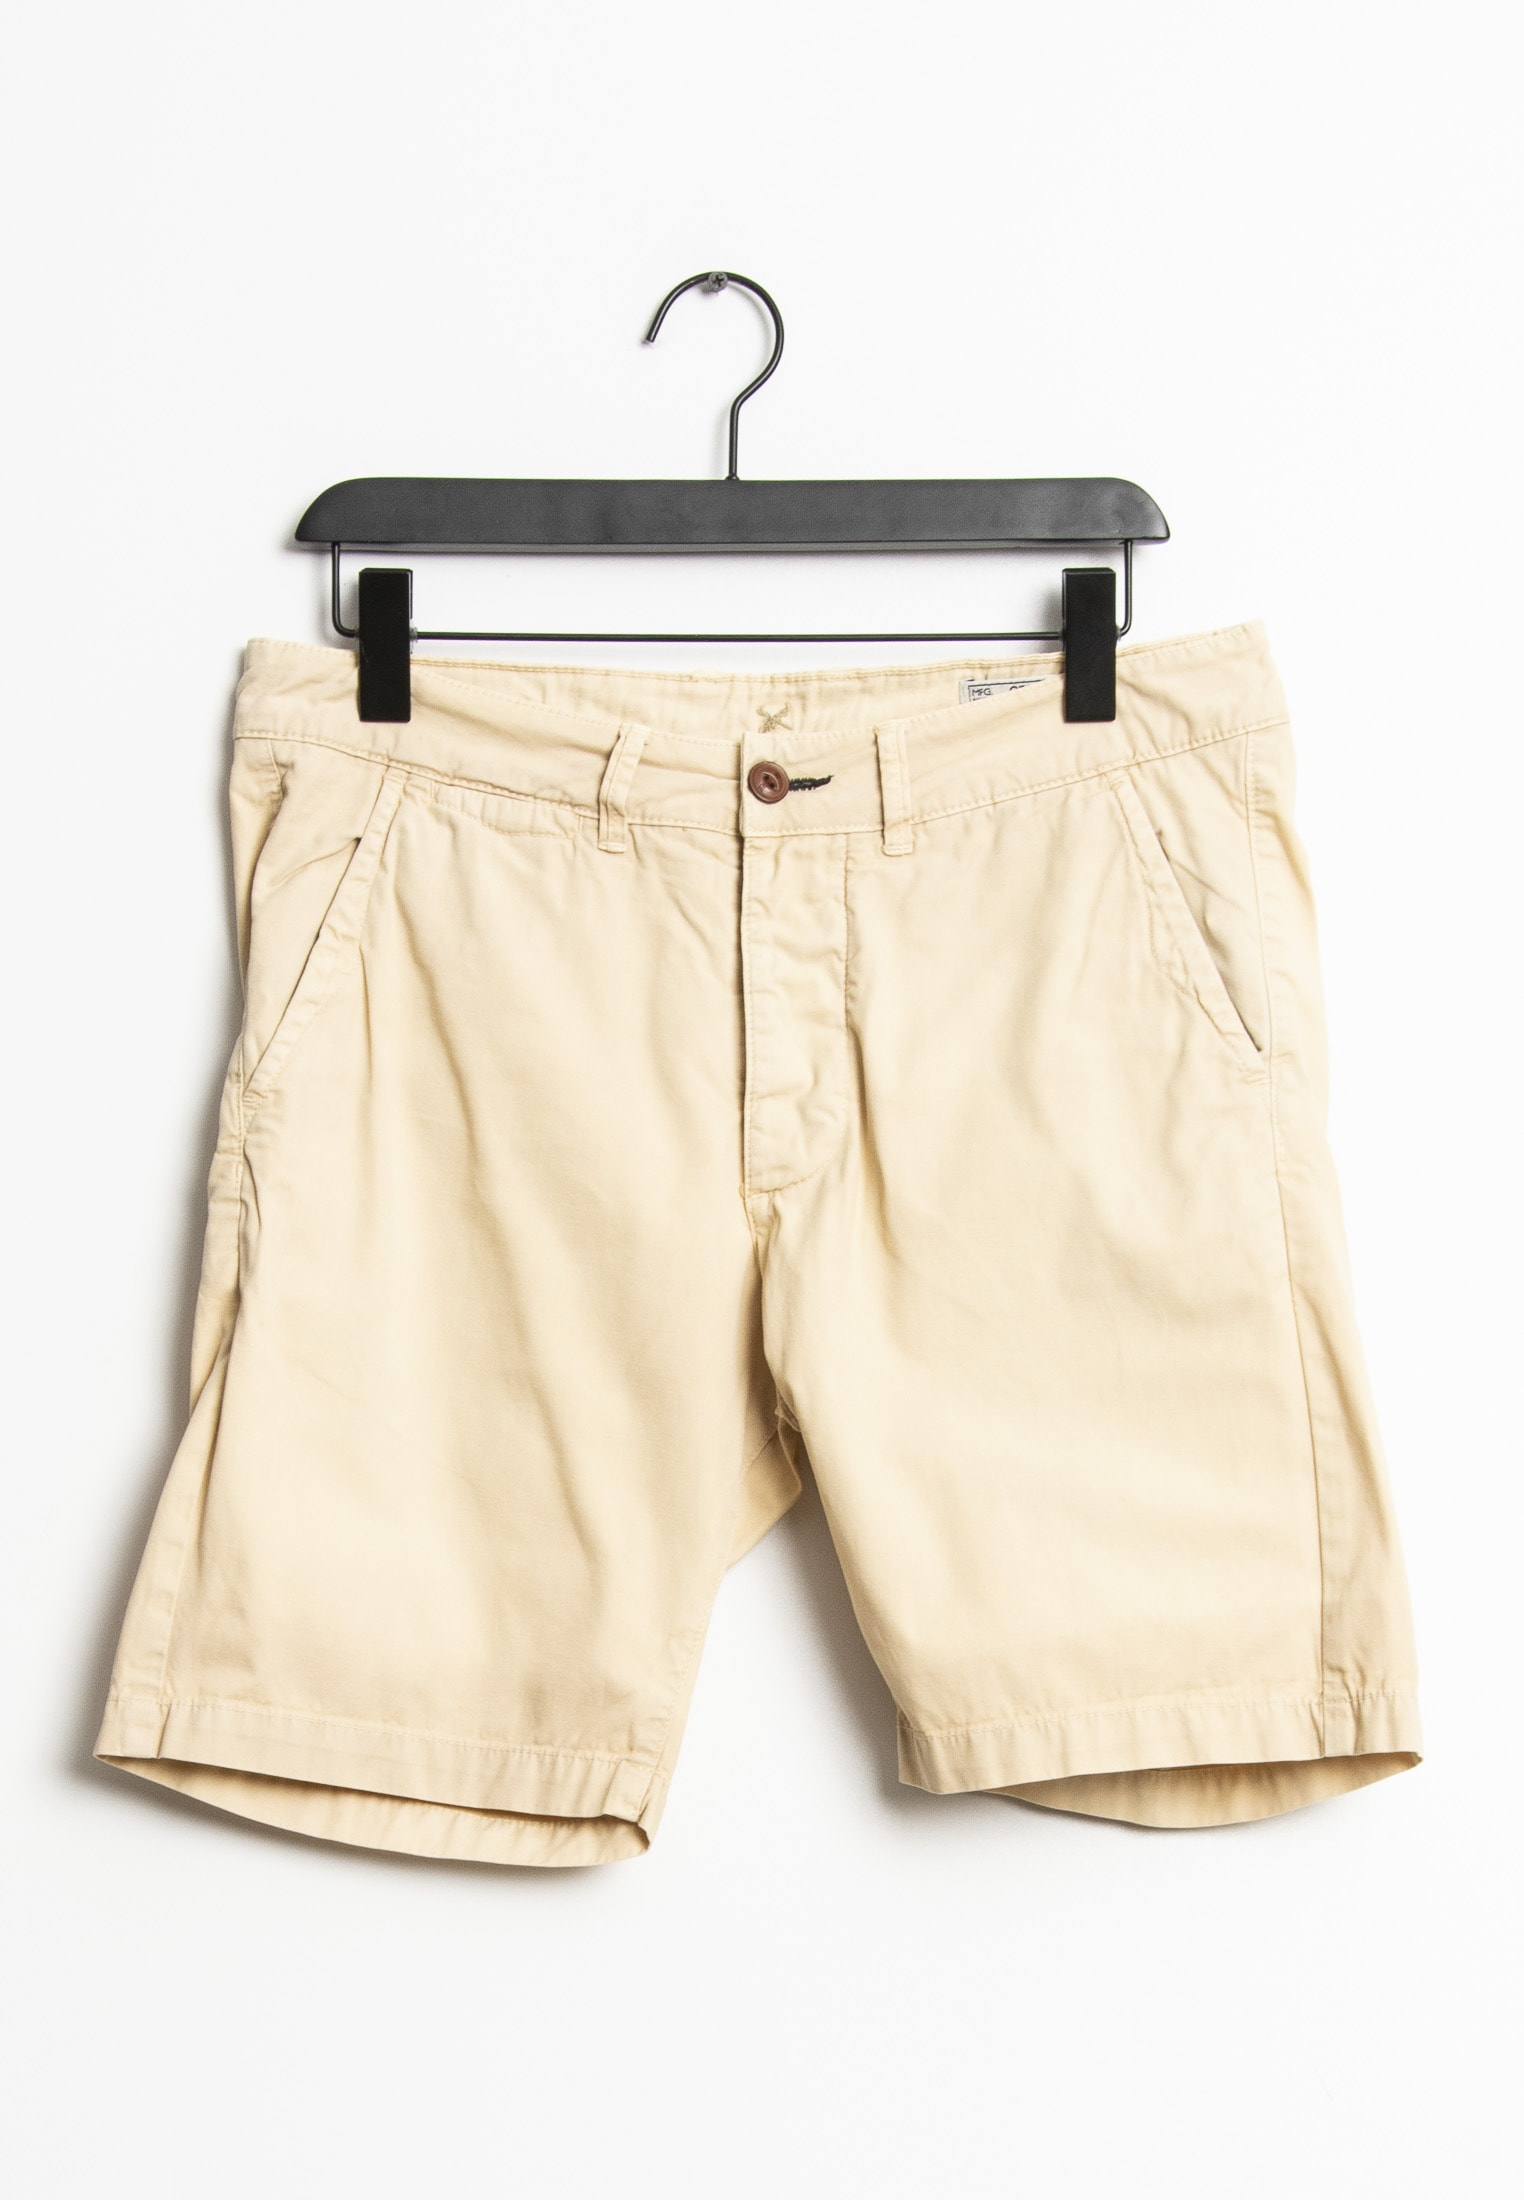 Jack & Jones Shorts Beige Gr.M